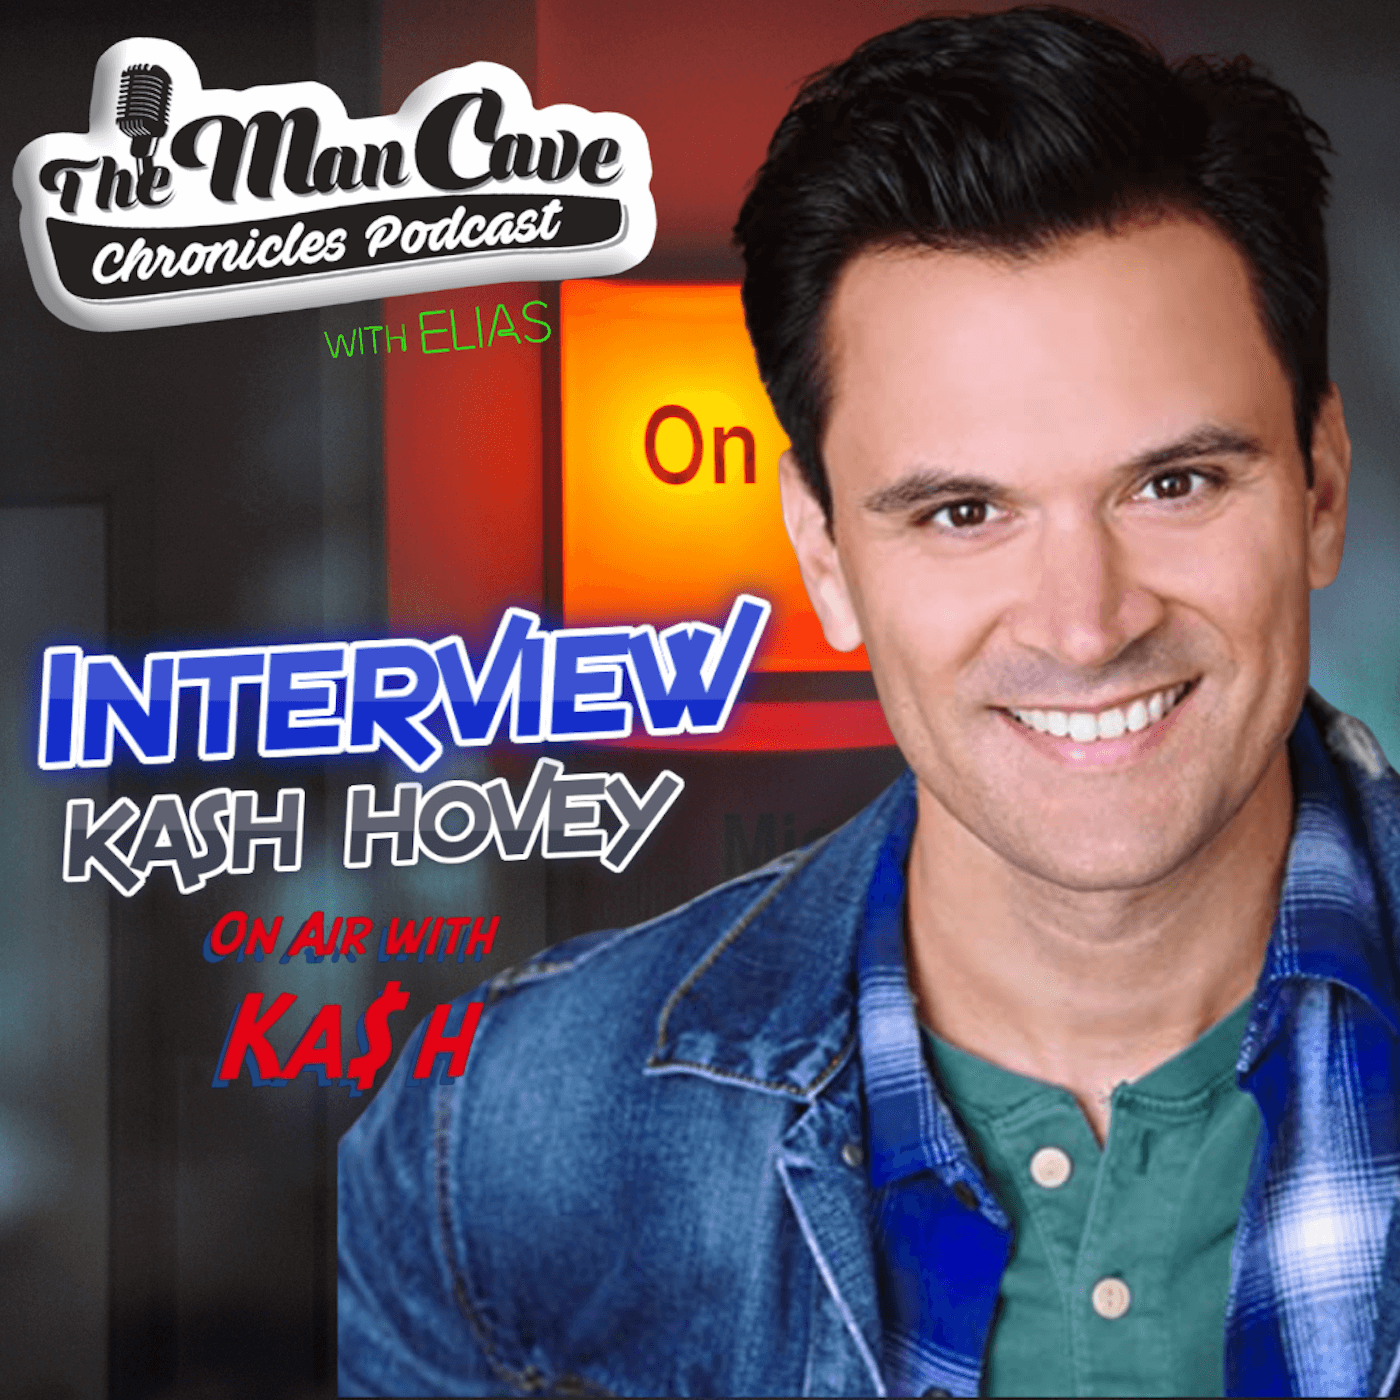 """Kash Hovey - Actor, Producer and host of """"On Air with Ka$h"""""""